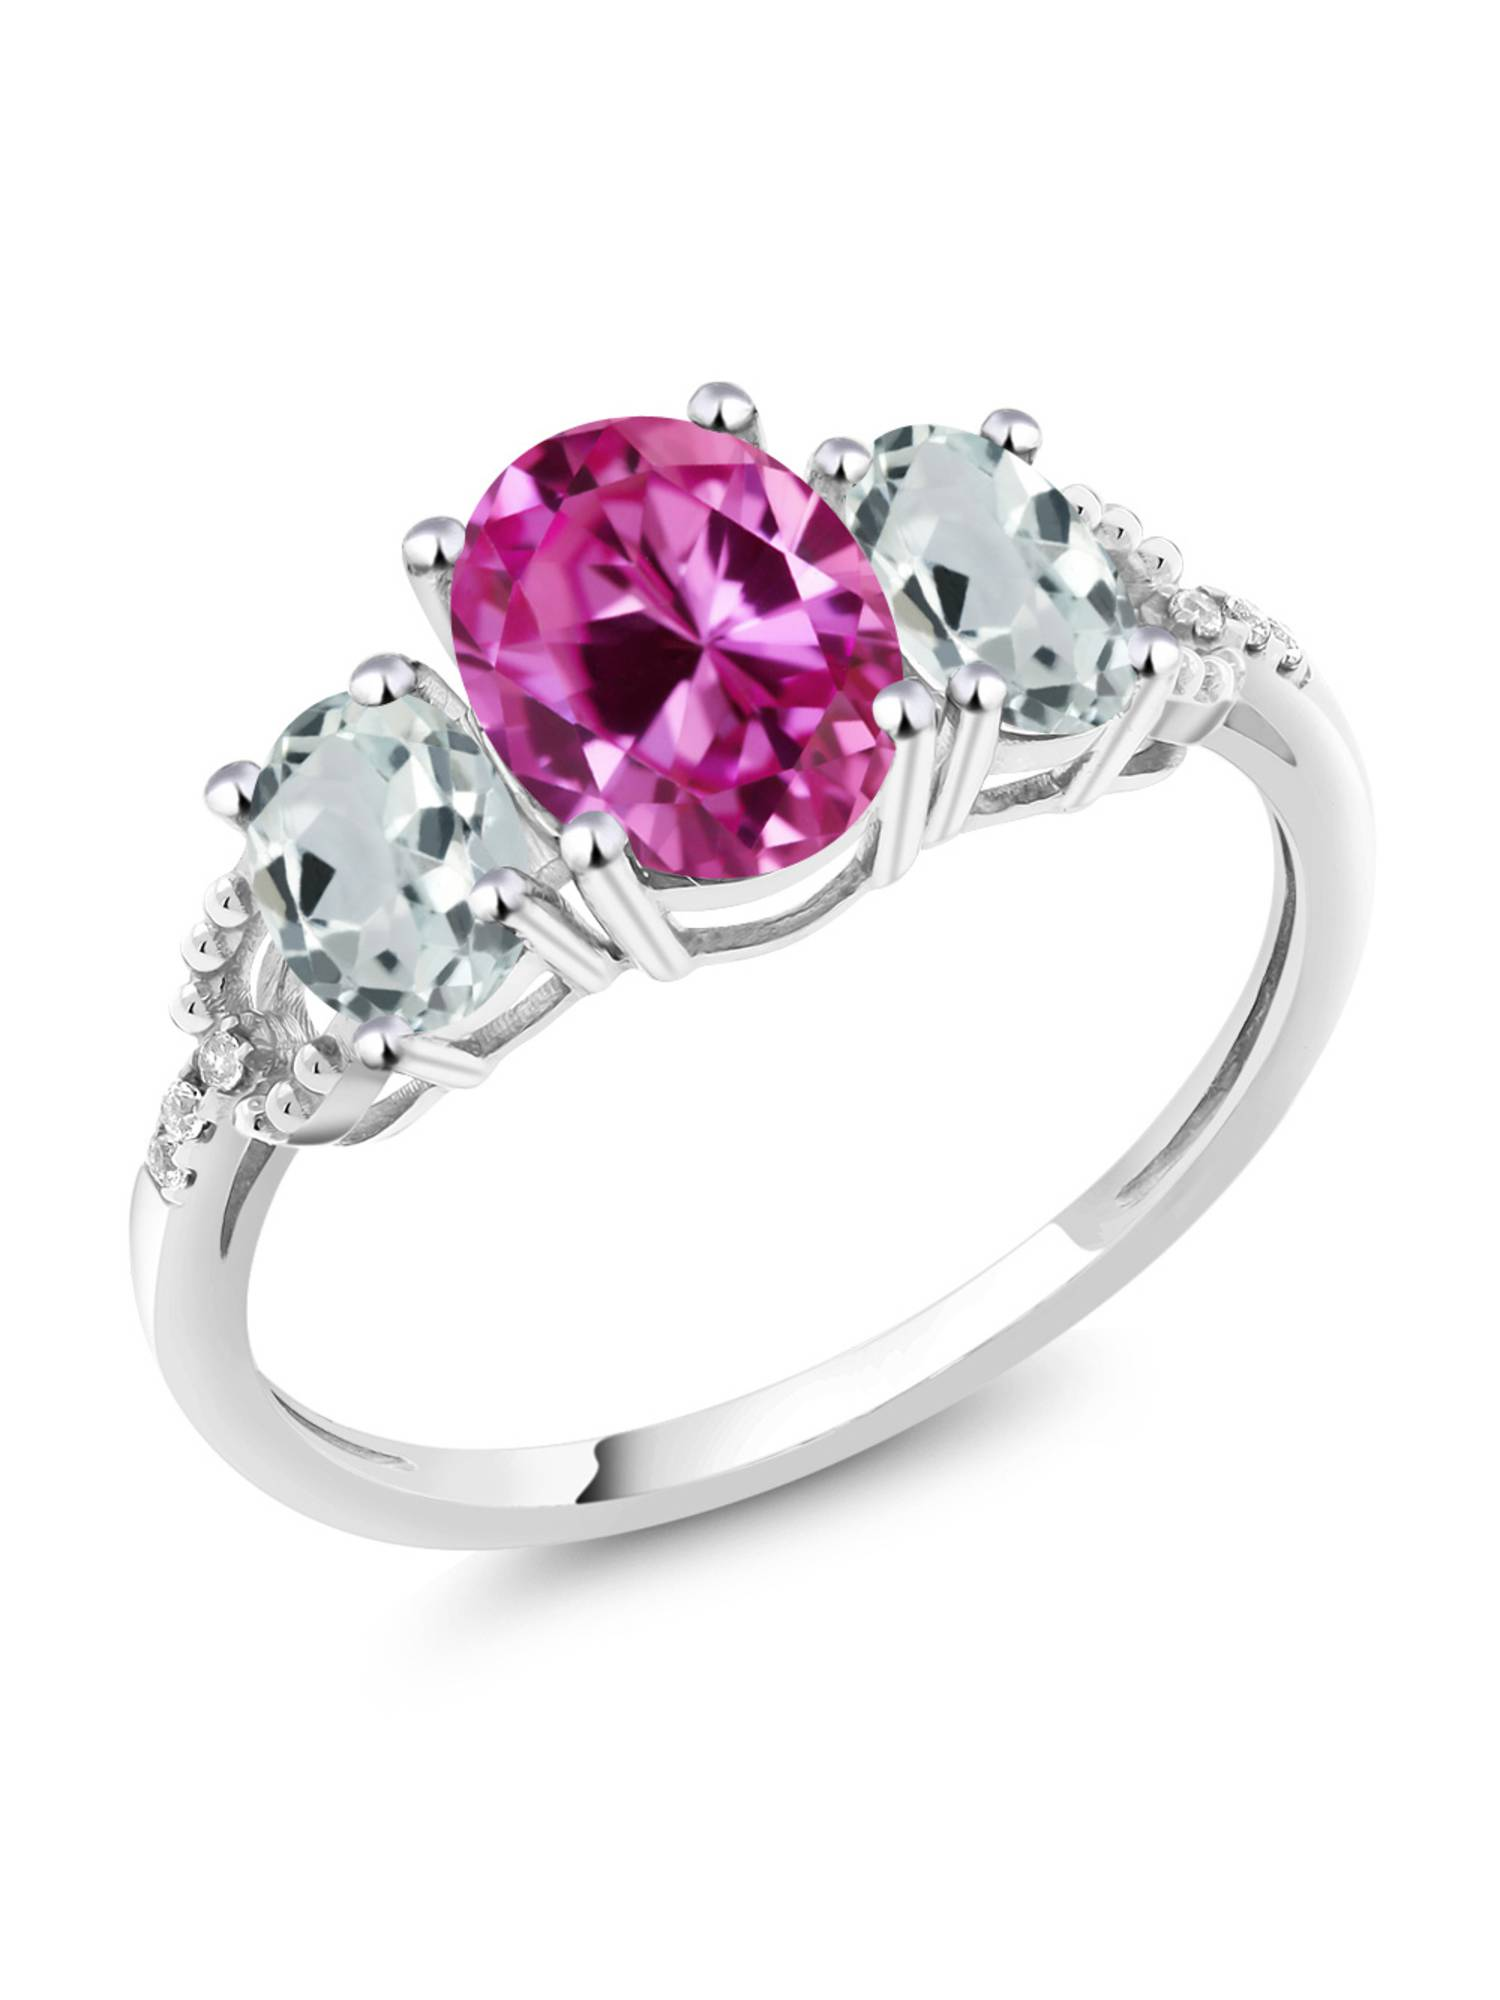 10K White Gold Diamond Accent Three-Stone Engagement Ring set with 2.56 Ct Pink Created Sapphire Sky Blue Aquamarine by